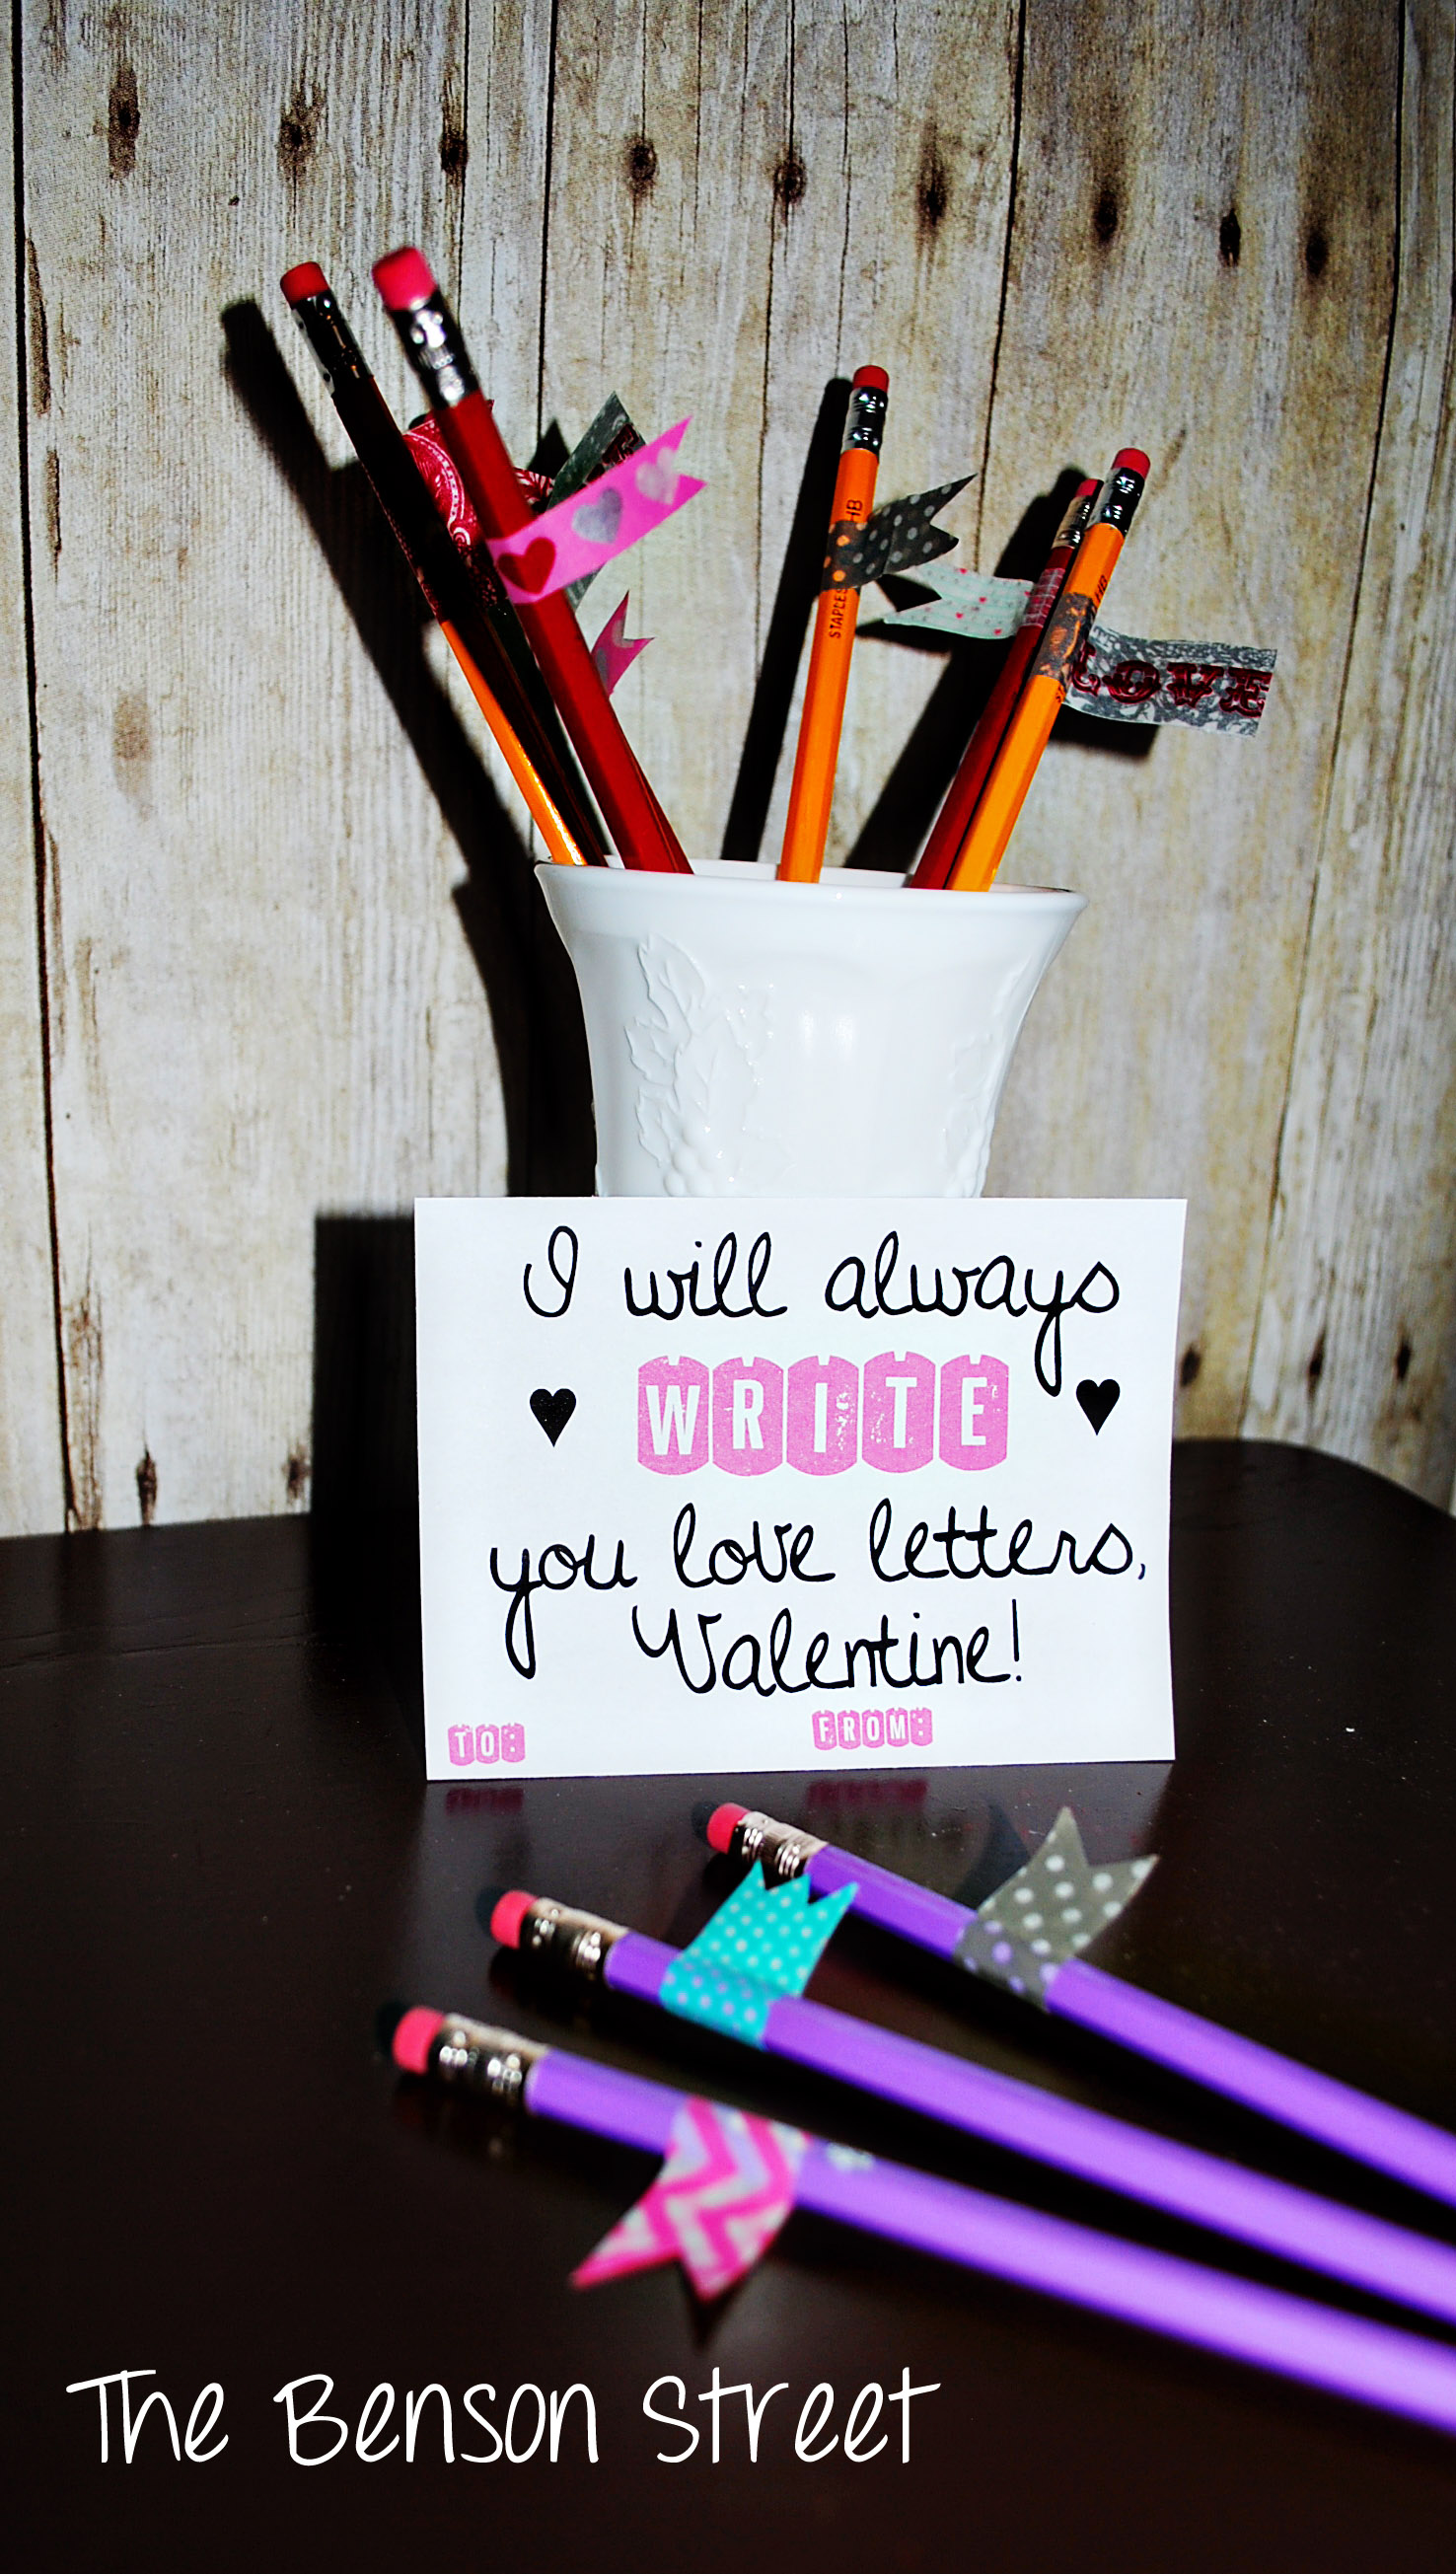 Love Letters Valentine at The Benson Street7